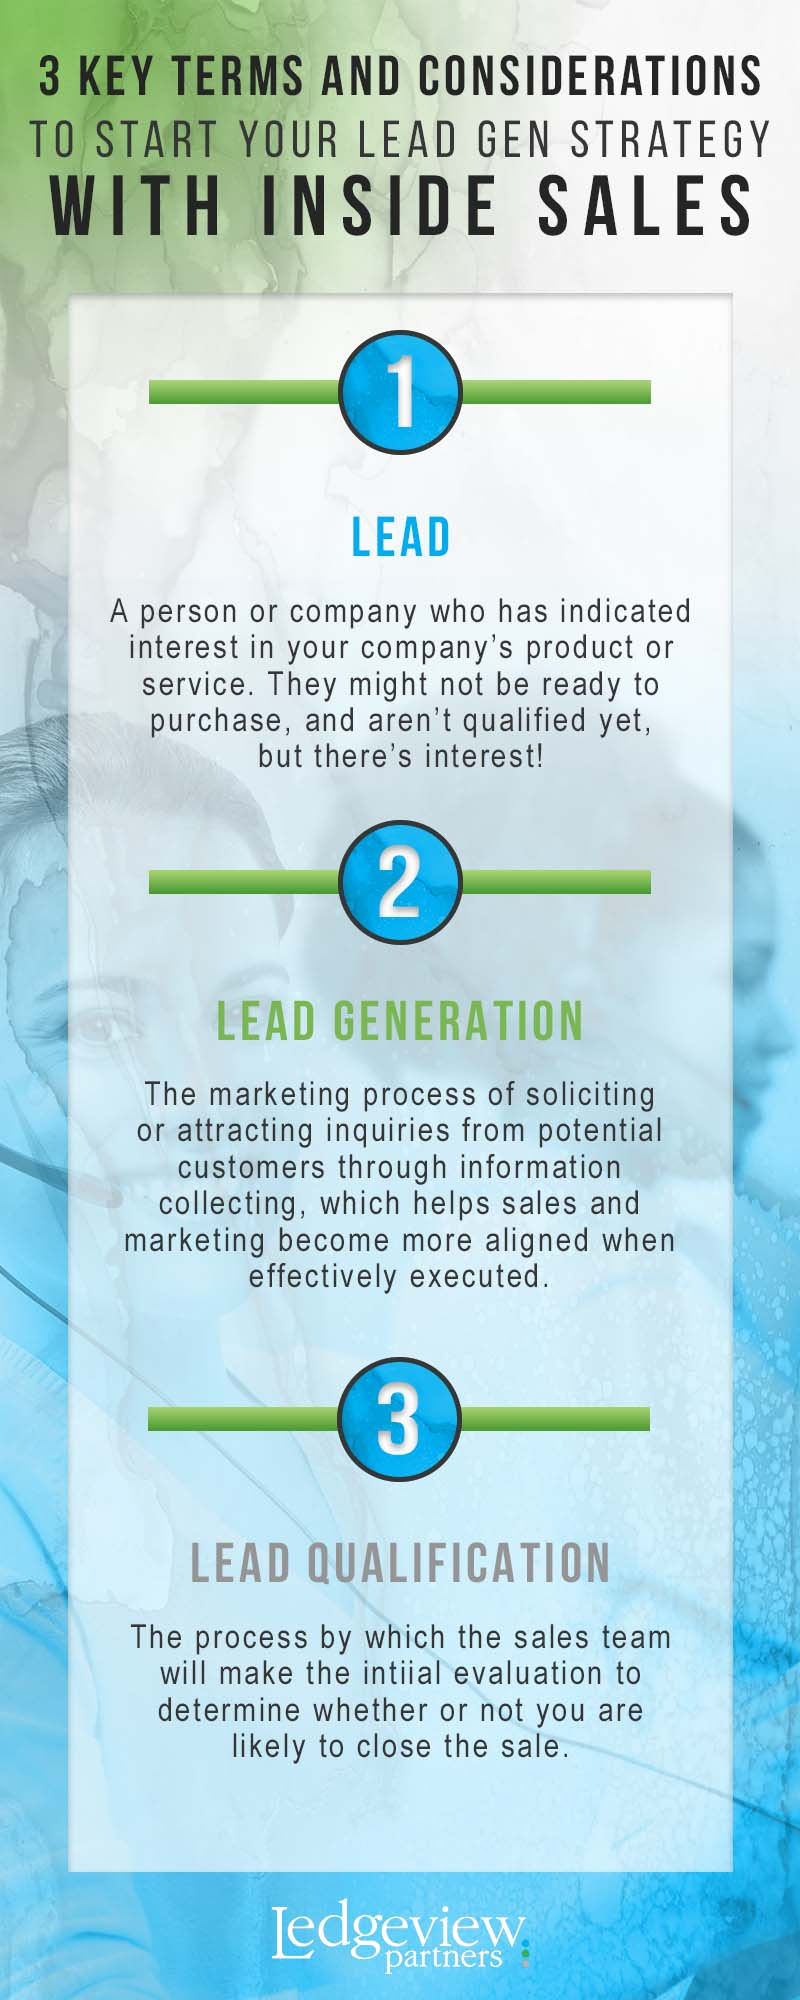 How to Accelerate Lead Generation with Inside Sales